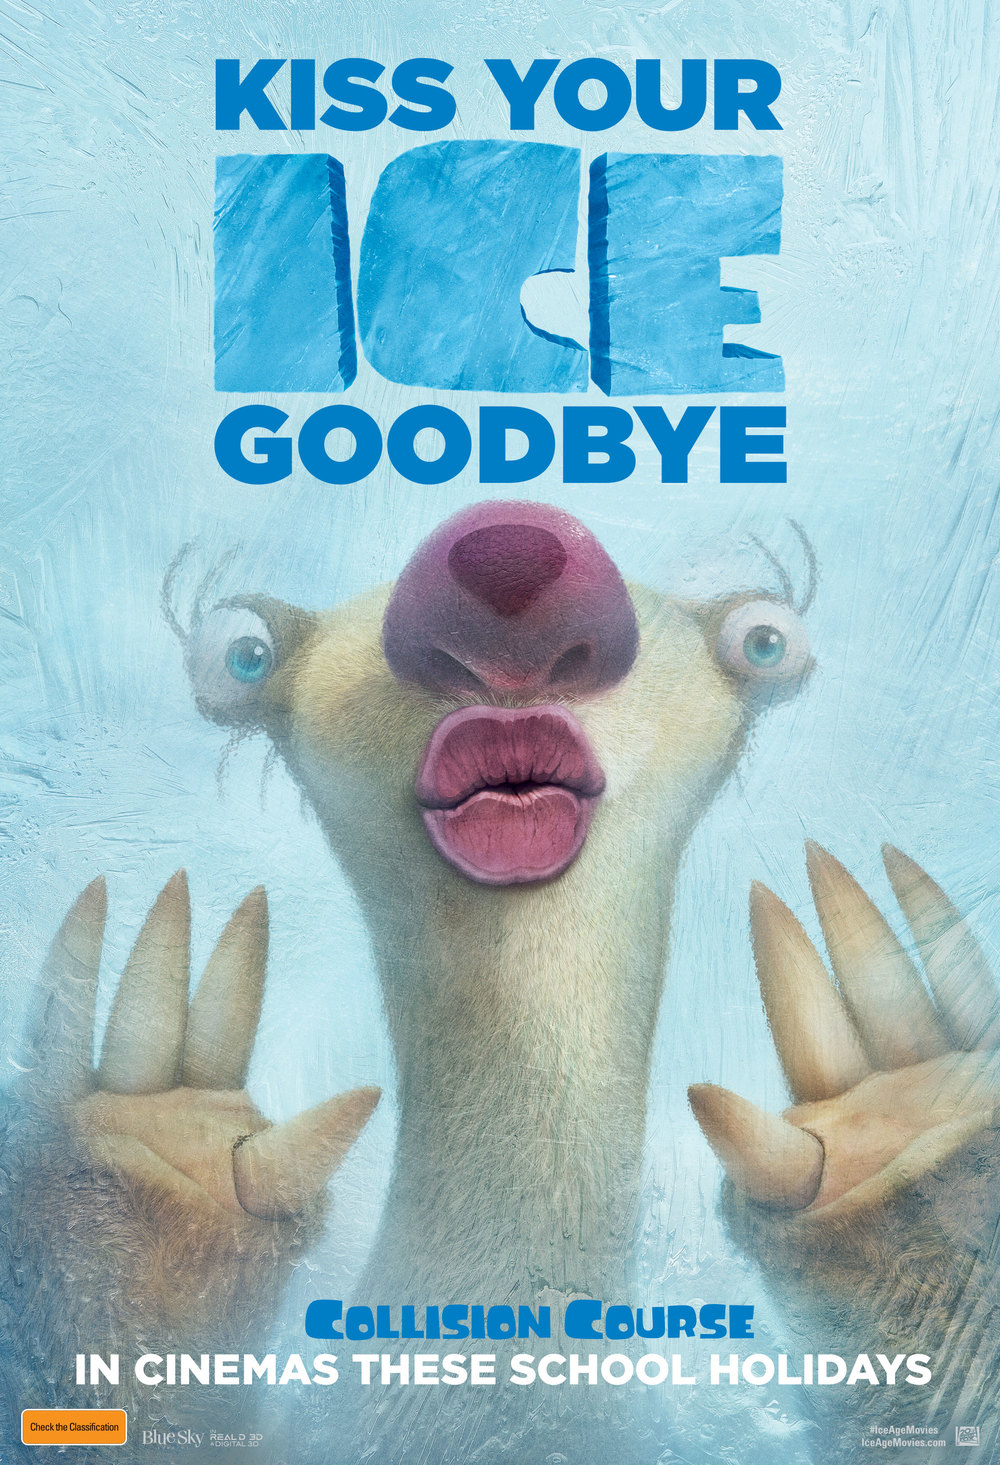 Ice Age Collision Course in Cinemas school holidays. Win movie tickets on www.mumscloset.com.au